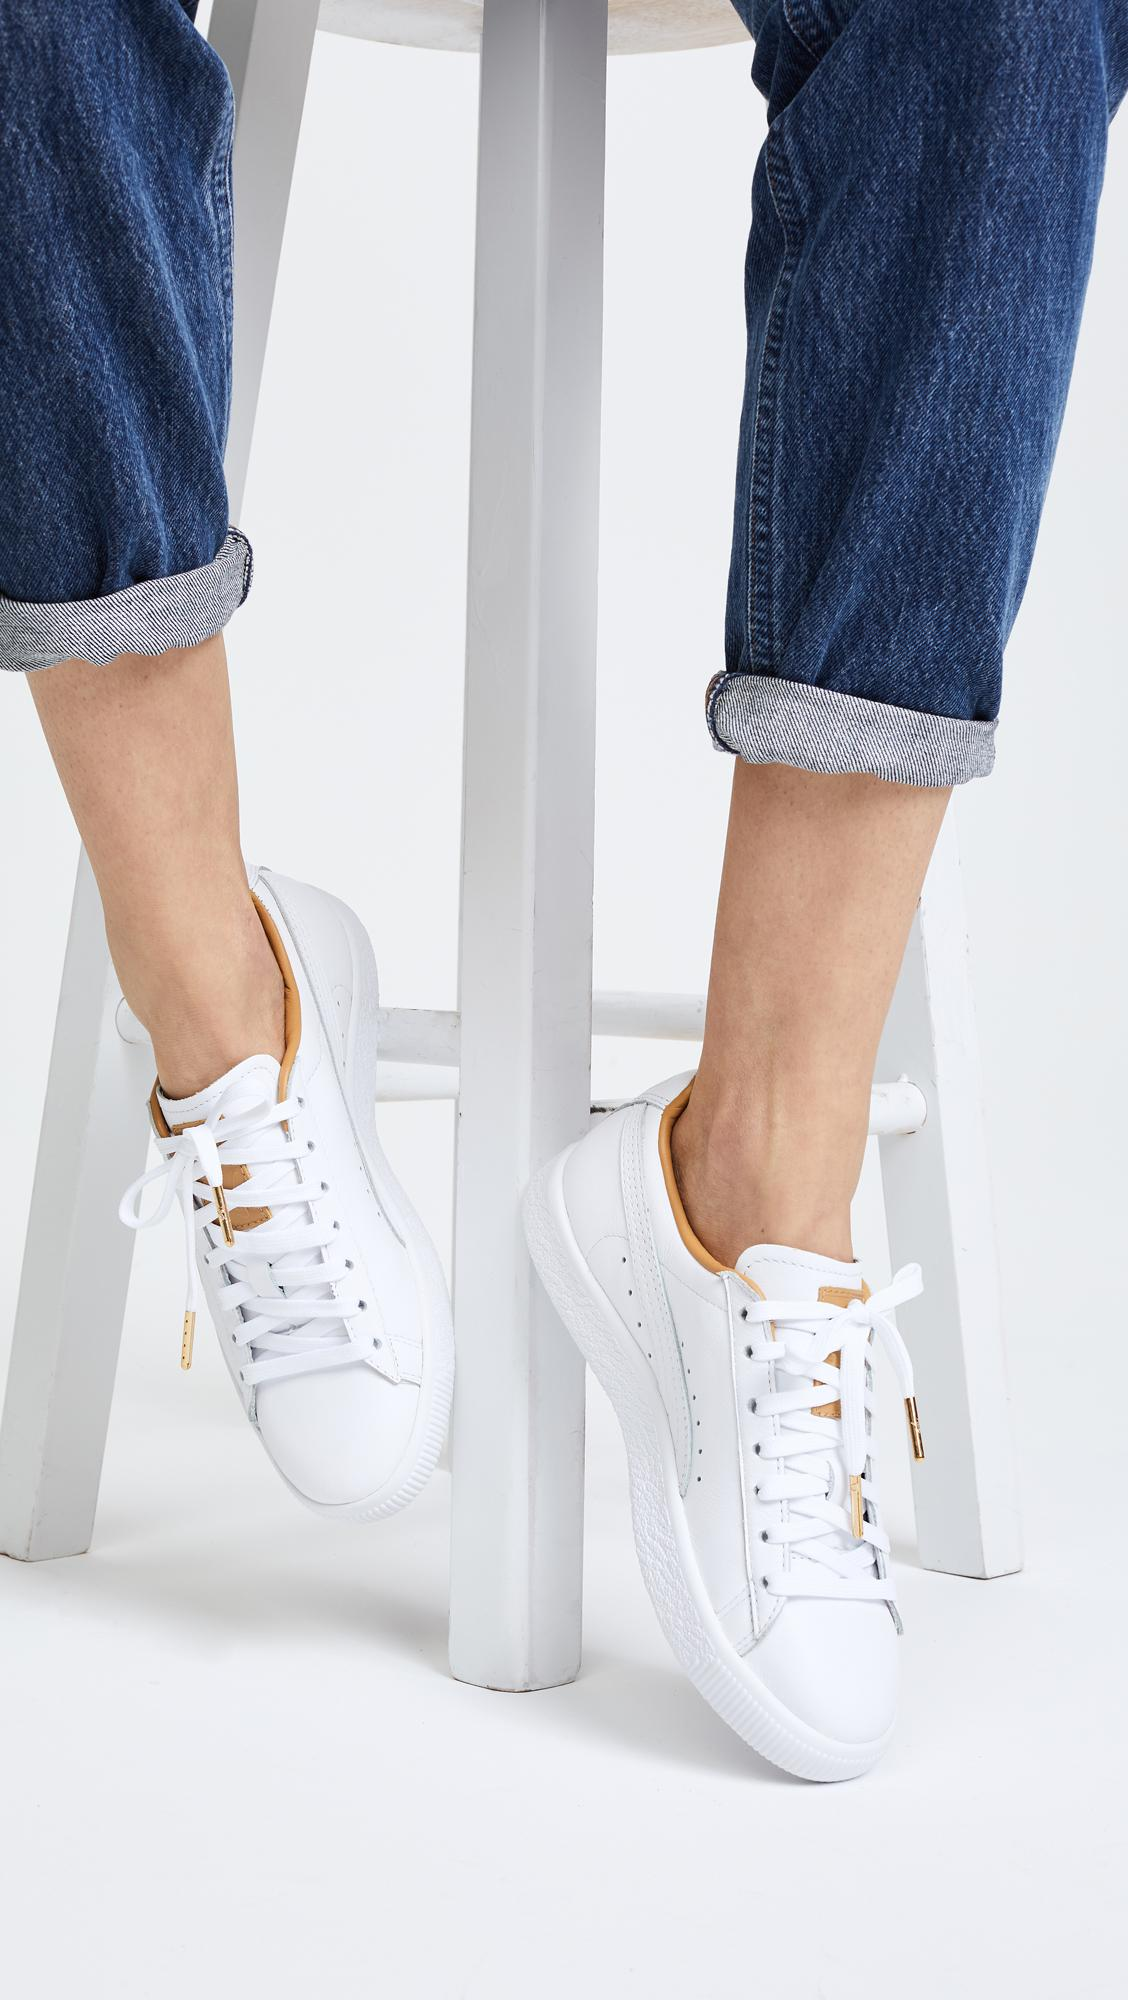 999c2baa36a Lyst - PUMA Clyde Core Leather Sneakers in White